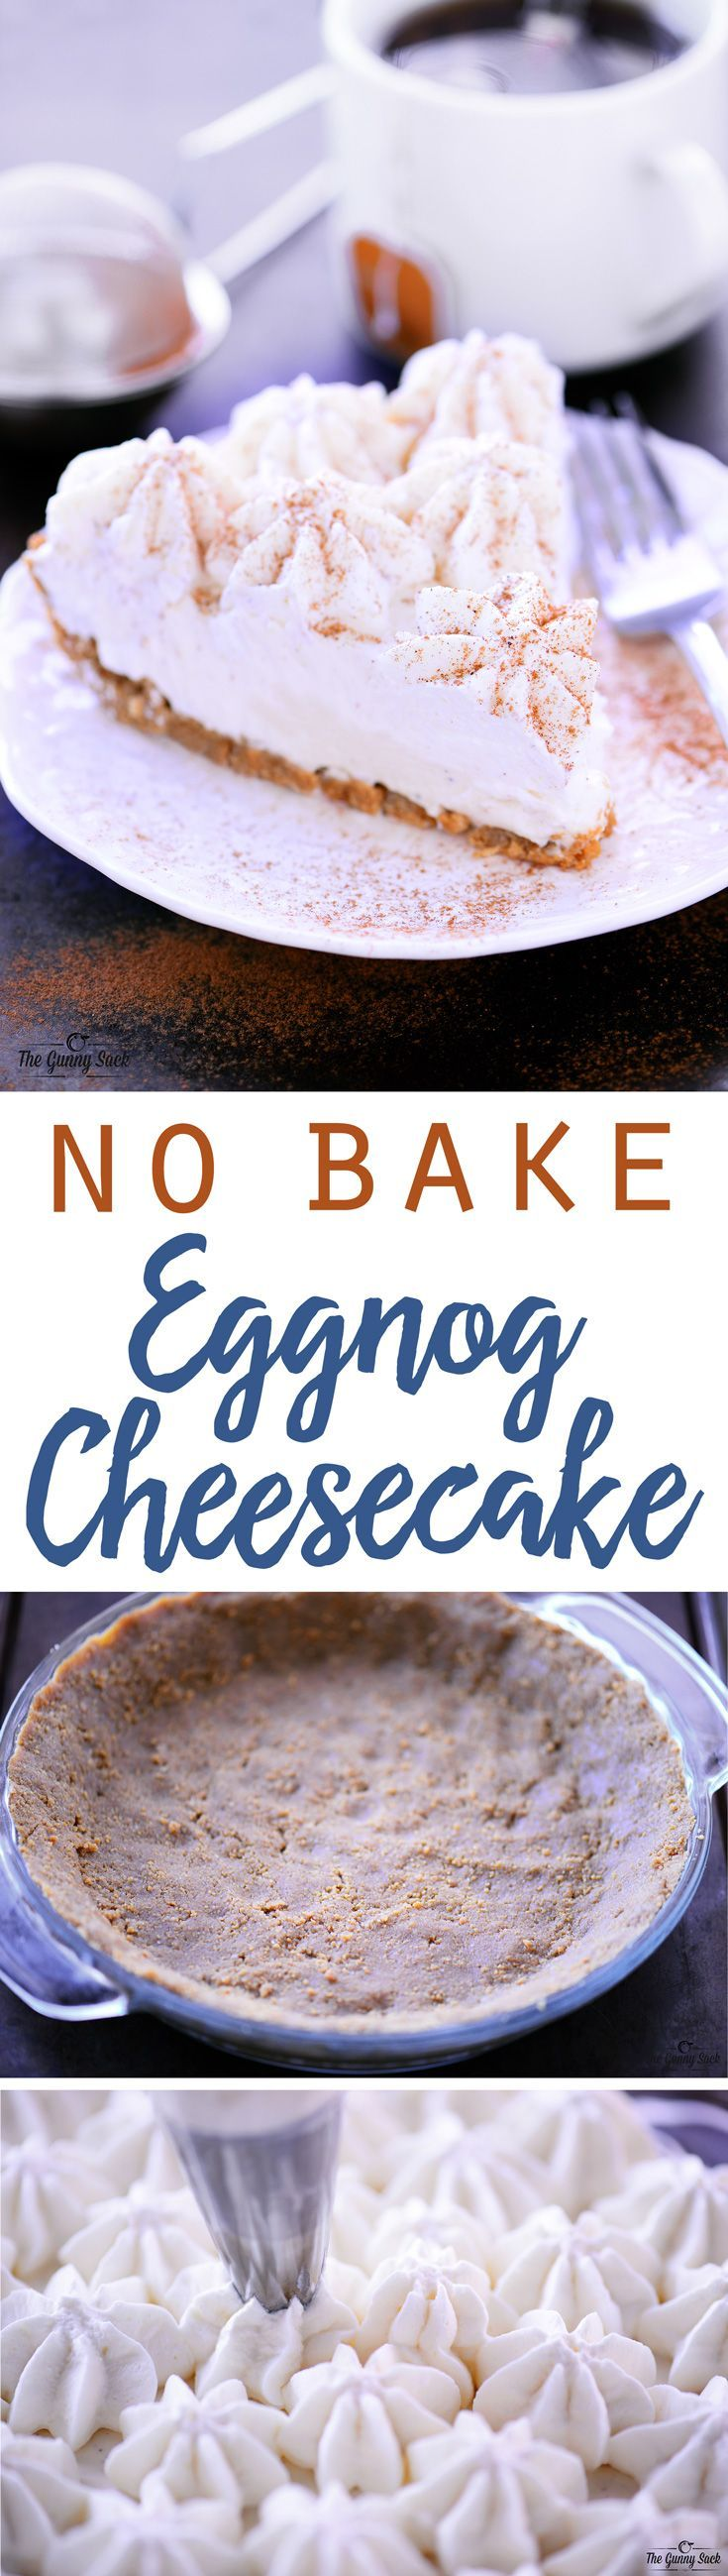 This holiday dessert recipe for No Bake Eggnog Cheesecake with a gluten free graham cracker crust is delicious and easy to make! Serve it at a holiday dinner or holiday party. #sponsored